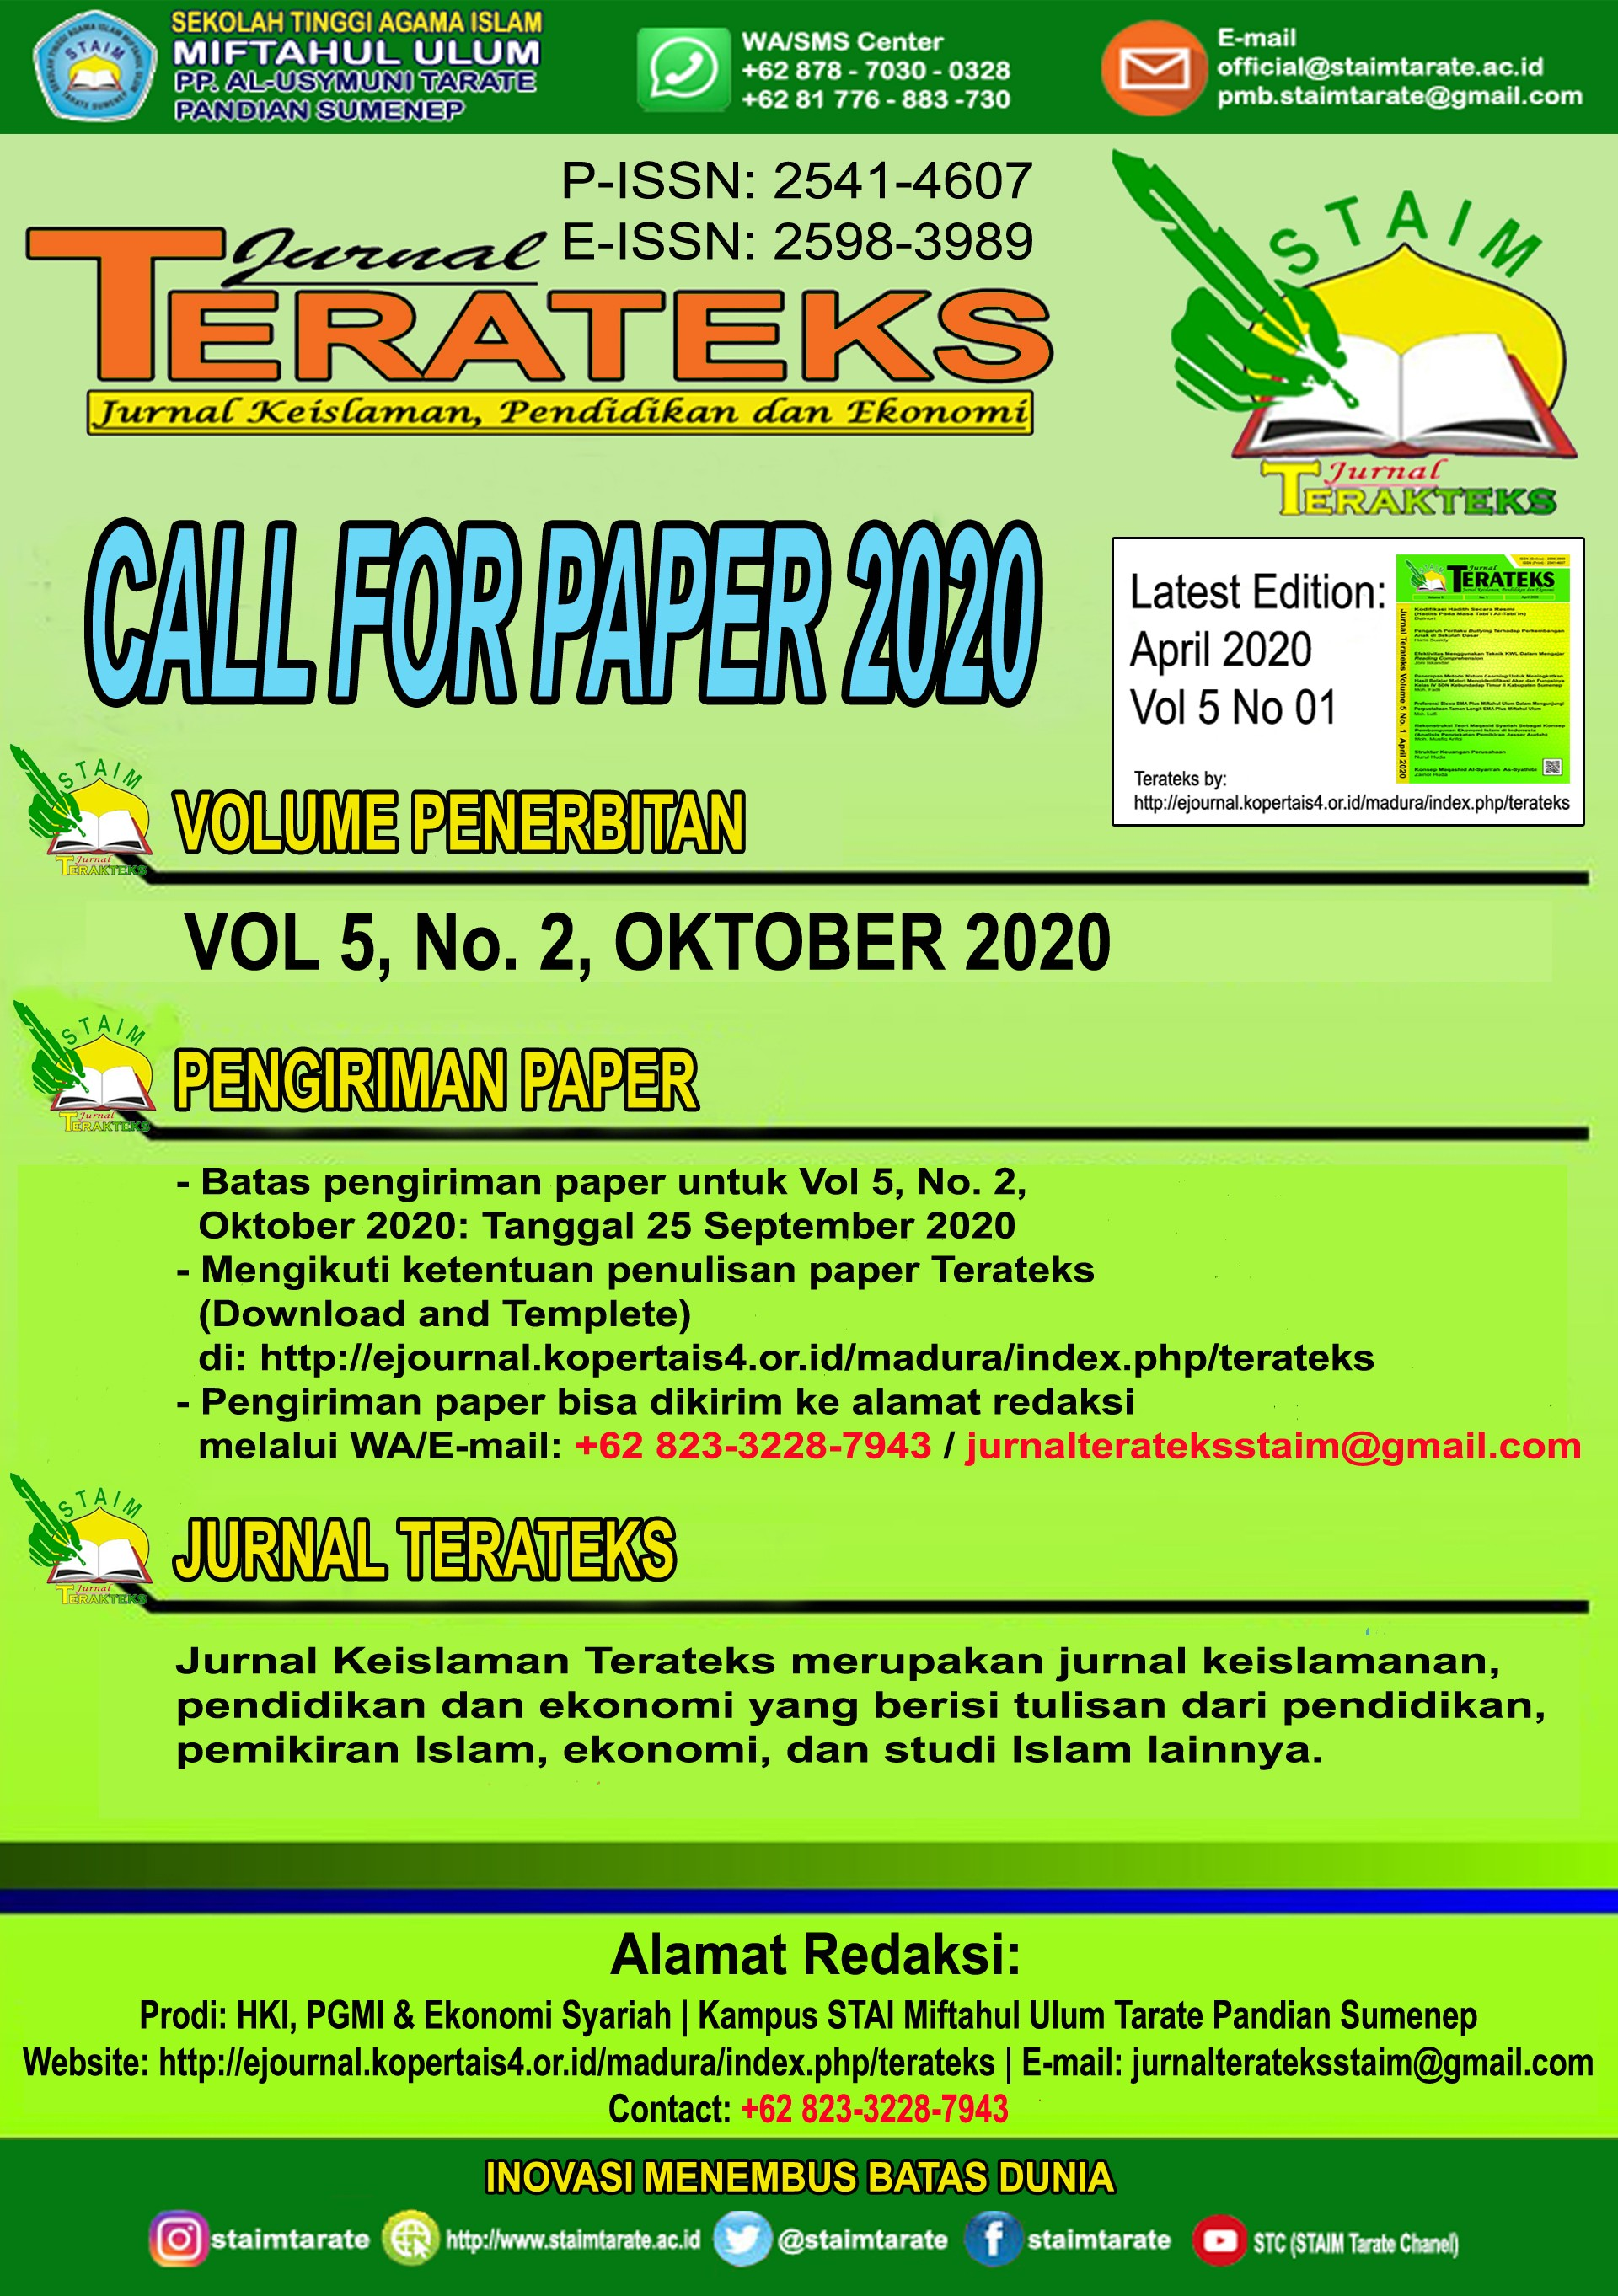 Call For Paper 2020